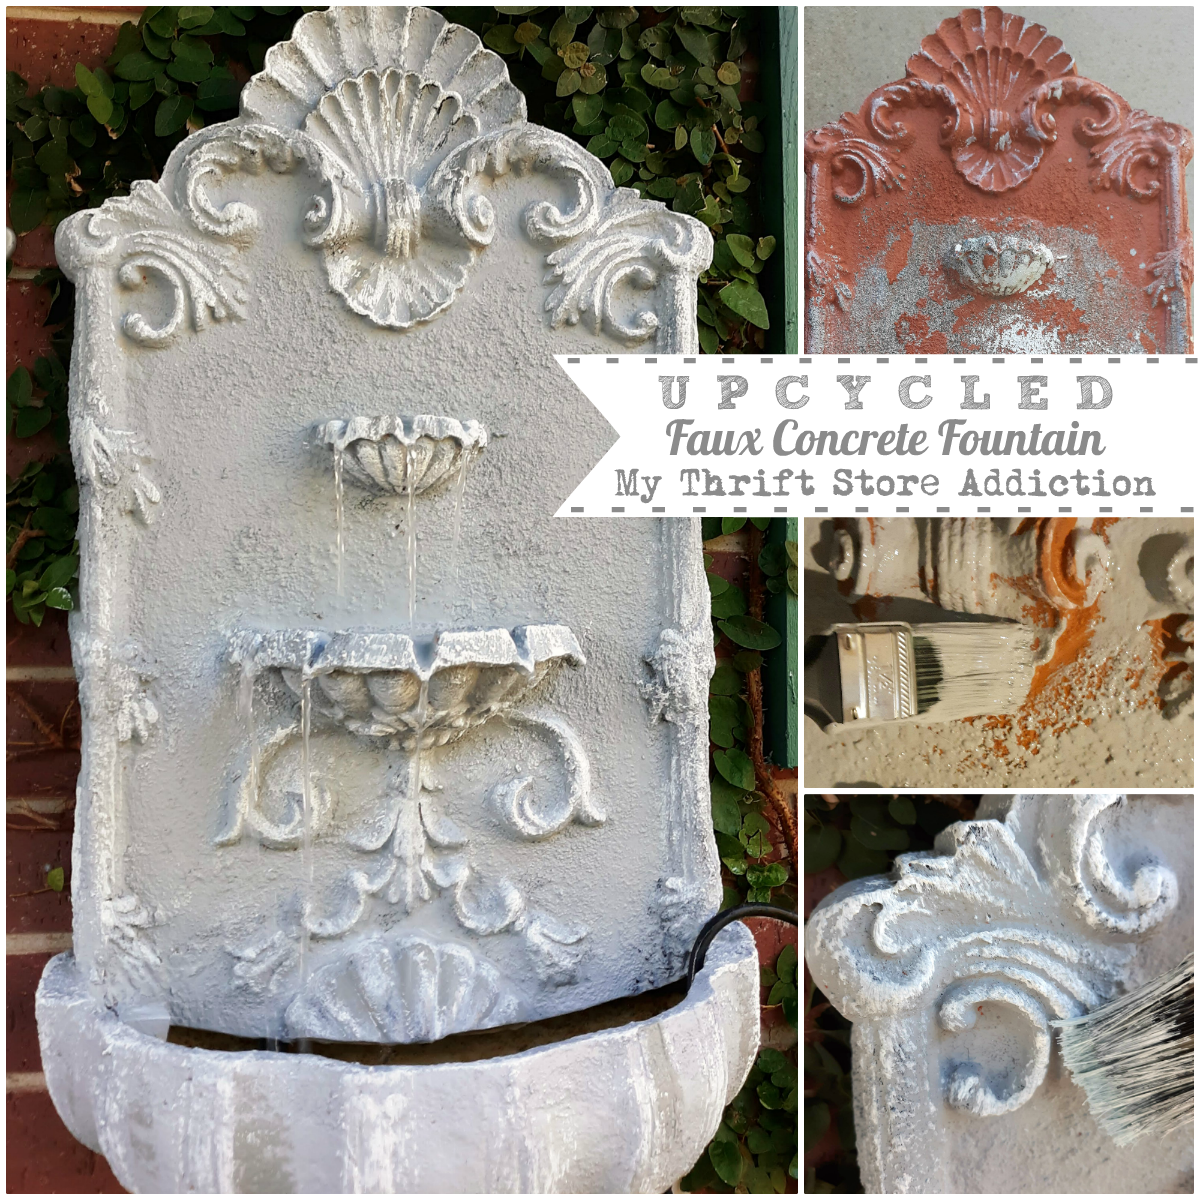 upcycled faux concrete fountain